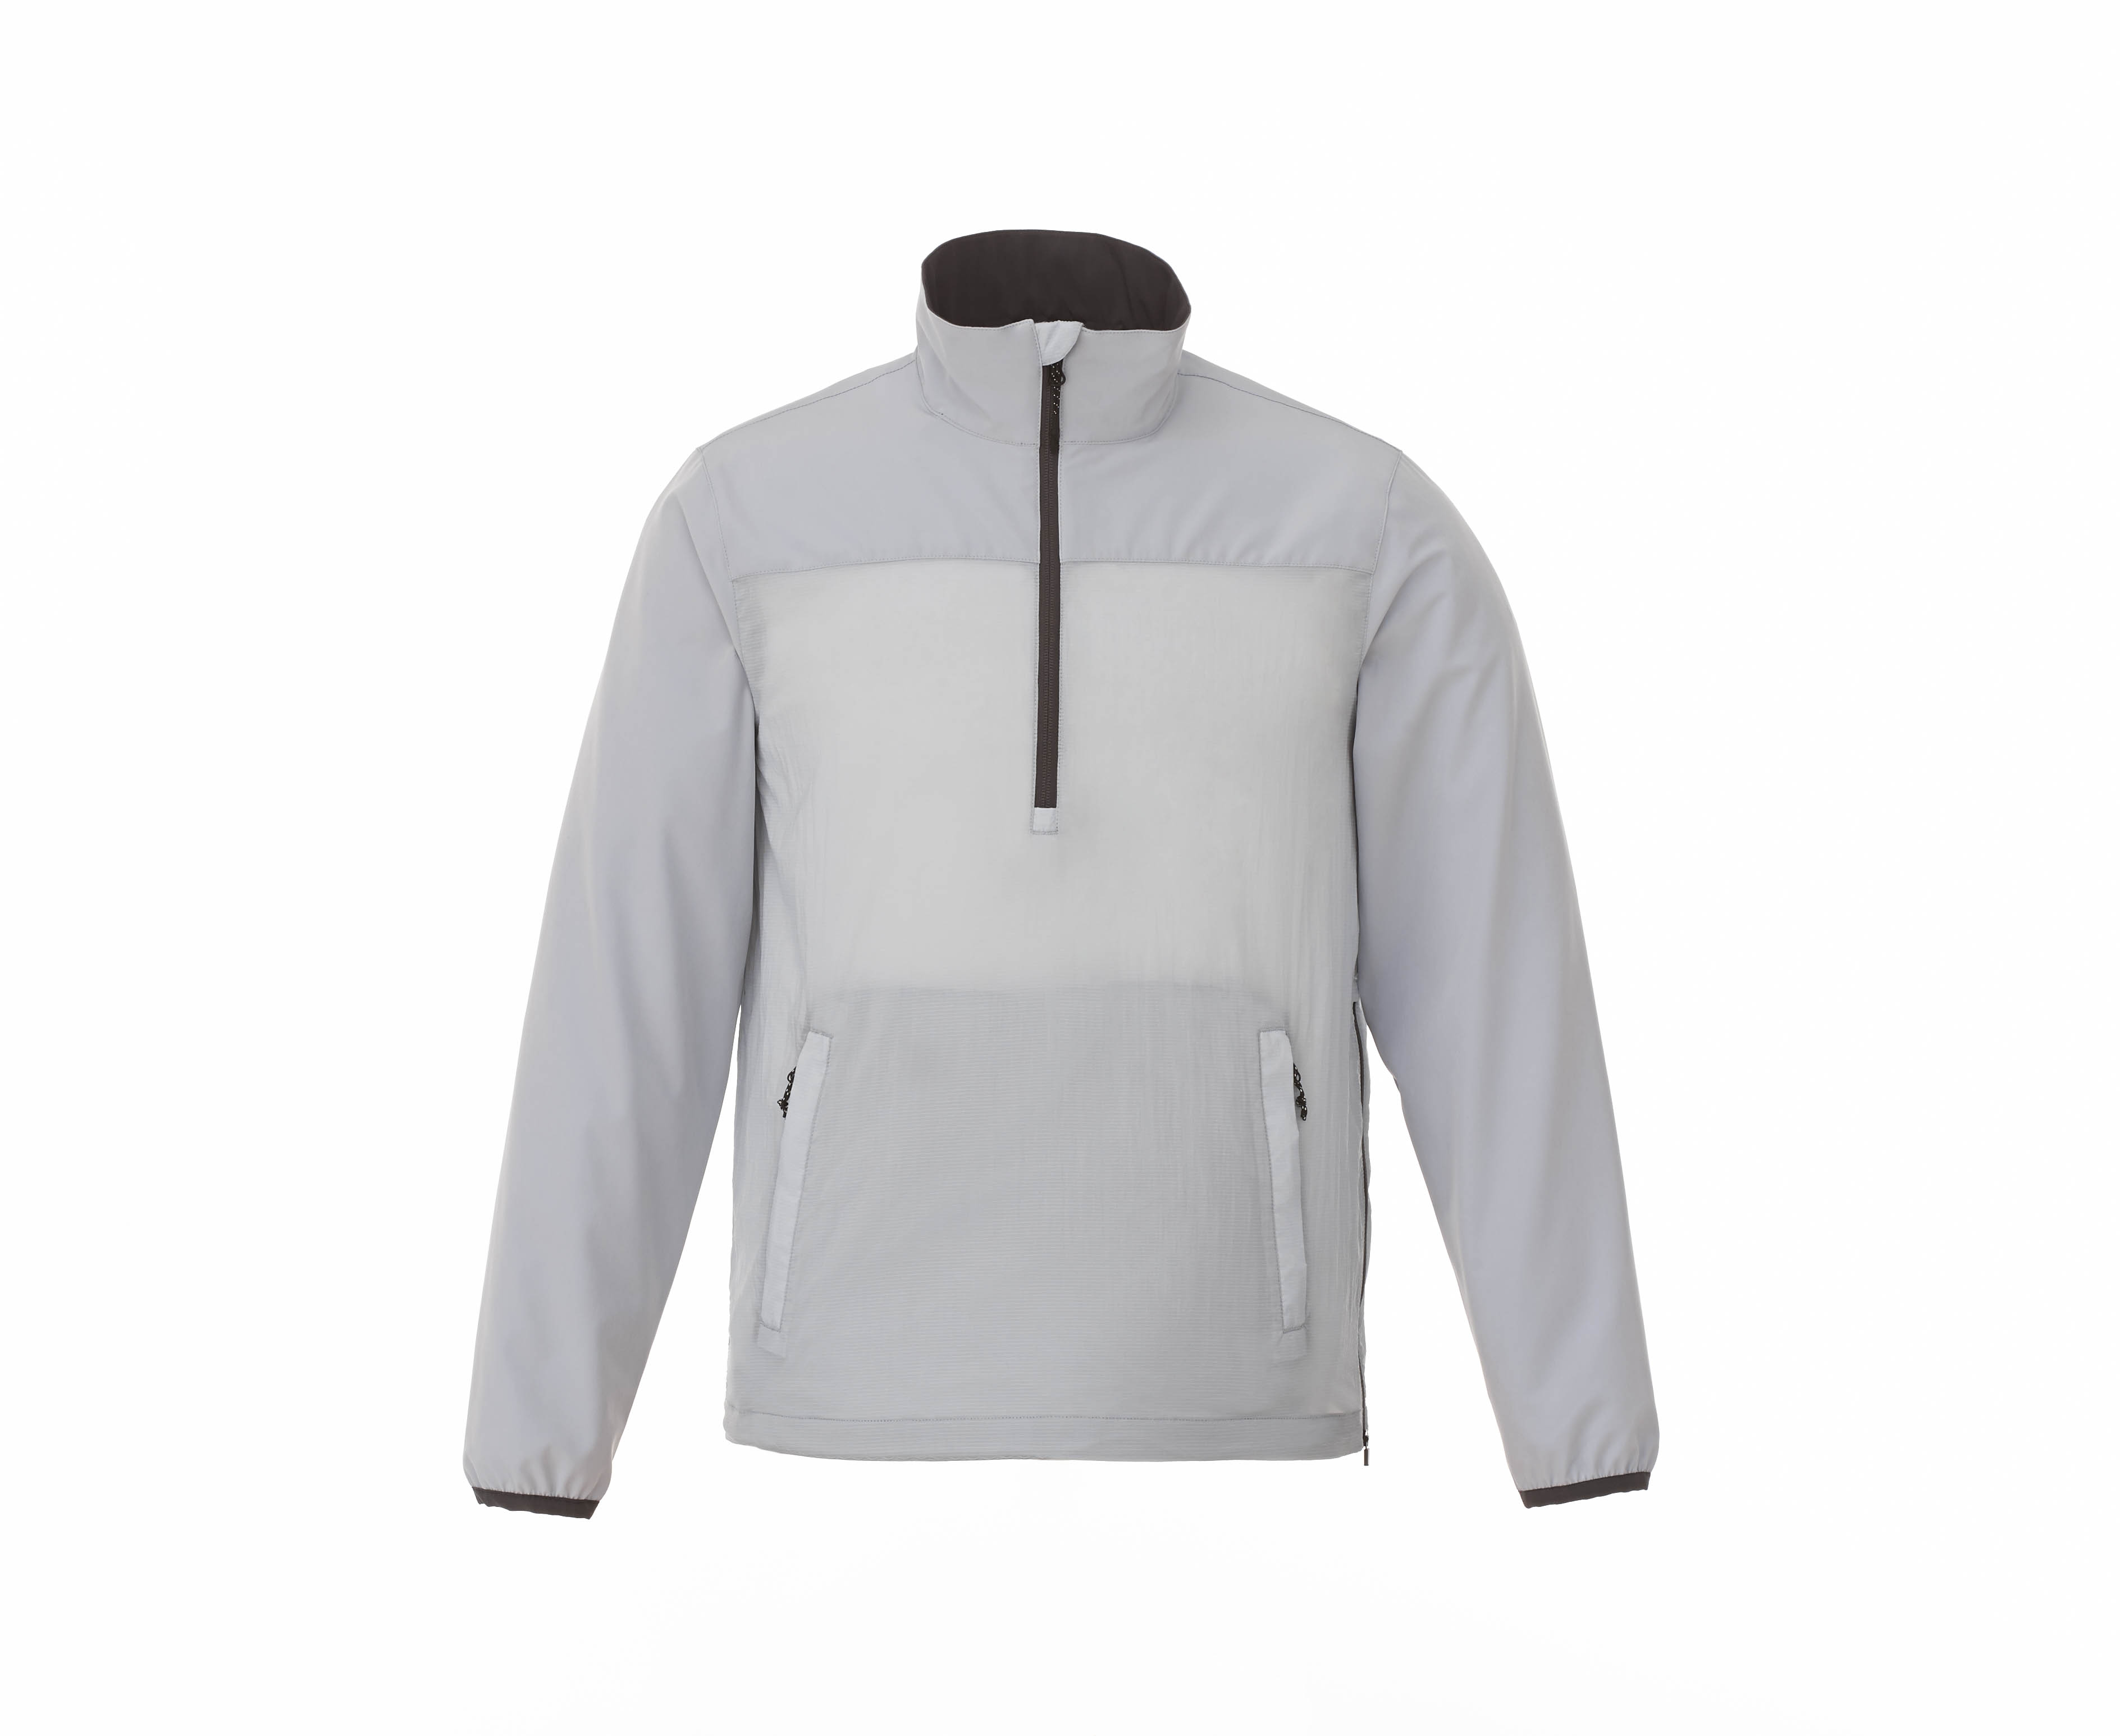 M-ODARAY Half Zip Jacket